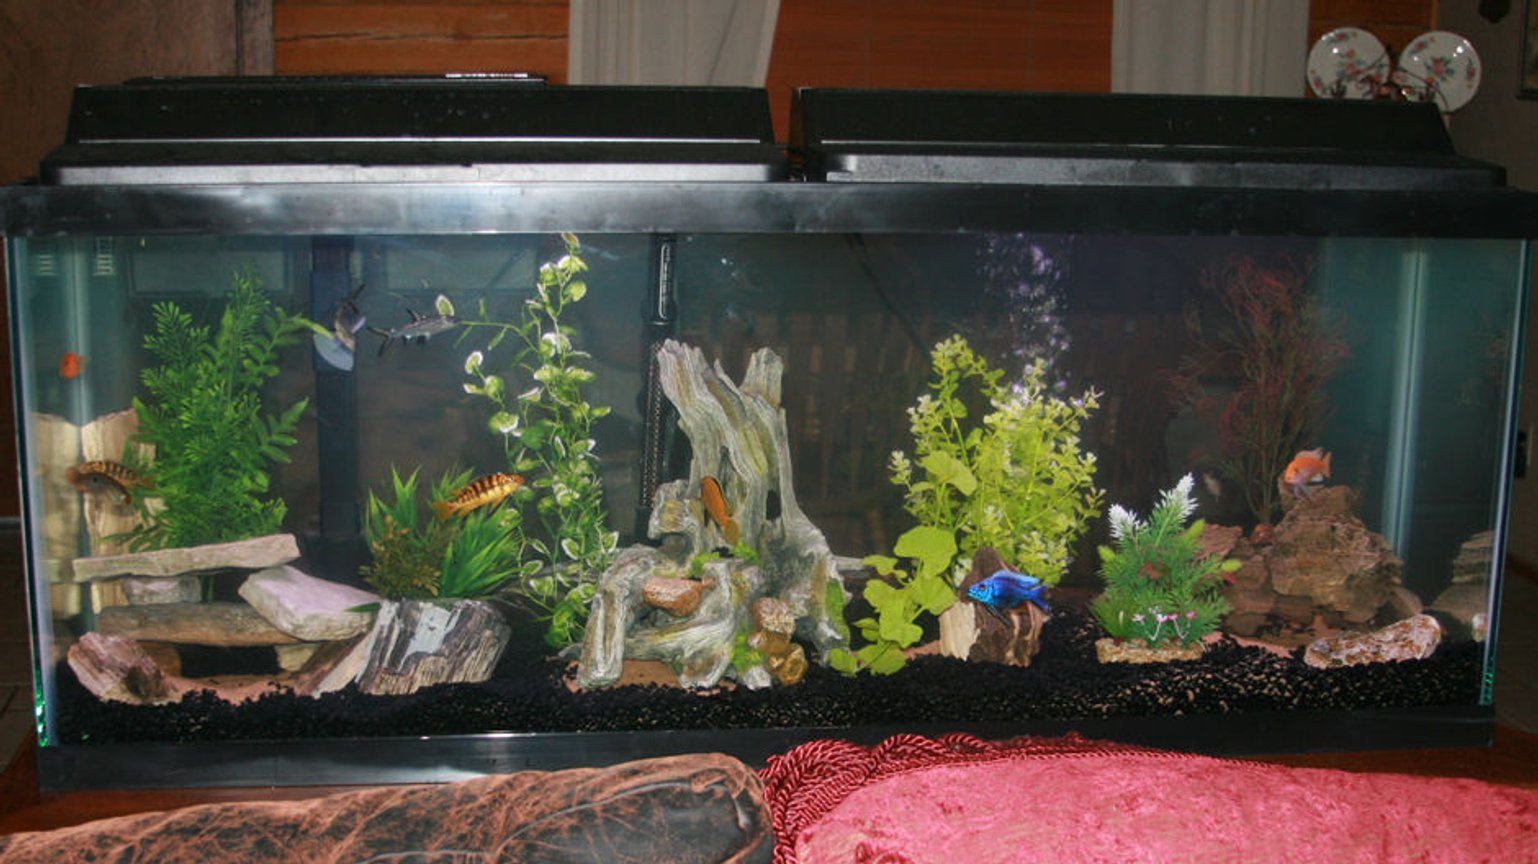 55 gallons freshwater fish tank (mostly fish and non-living decorations) - I am new to Cichlid's and this tank is 2 weeks old. All of the petrified wood and rocks were collect from the ranch except the artificial in the middle.